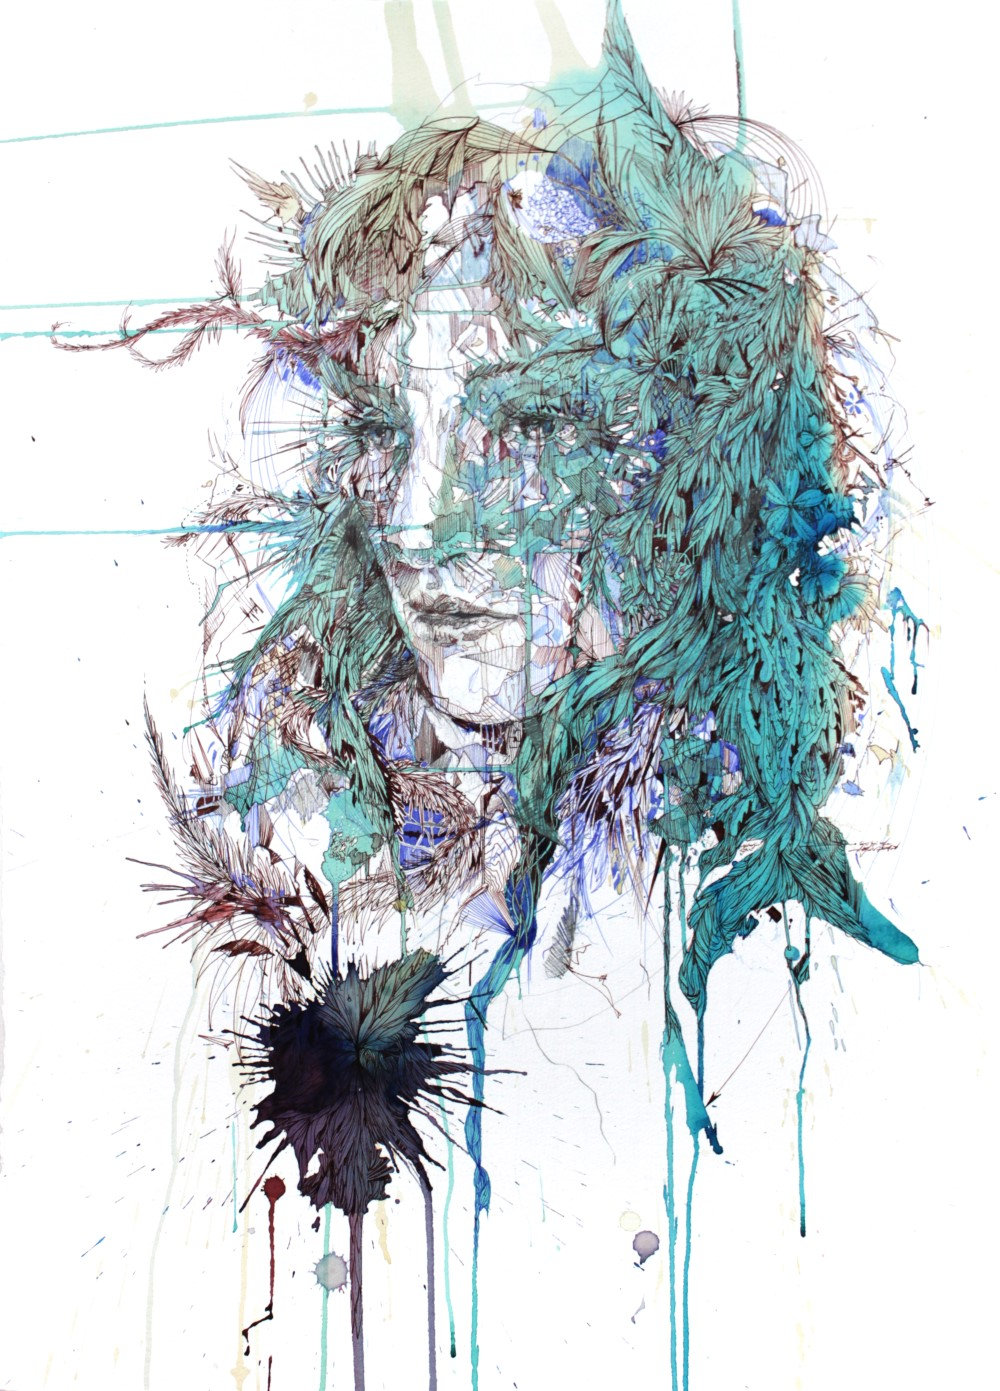 Back to Nature by Carne Griffiths